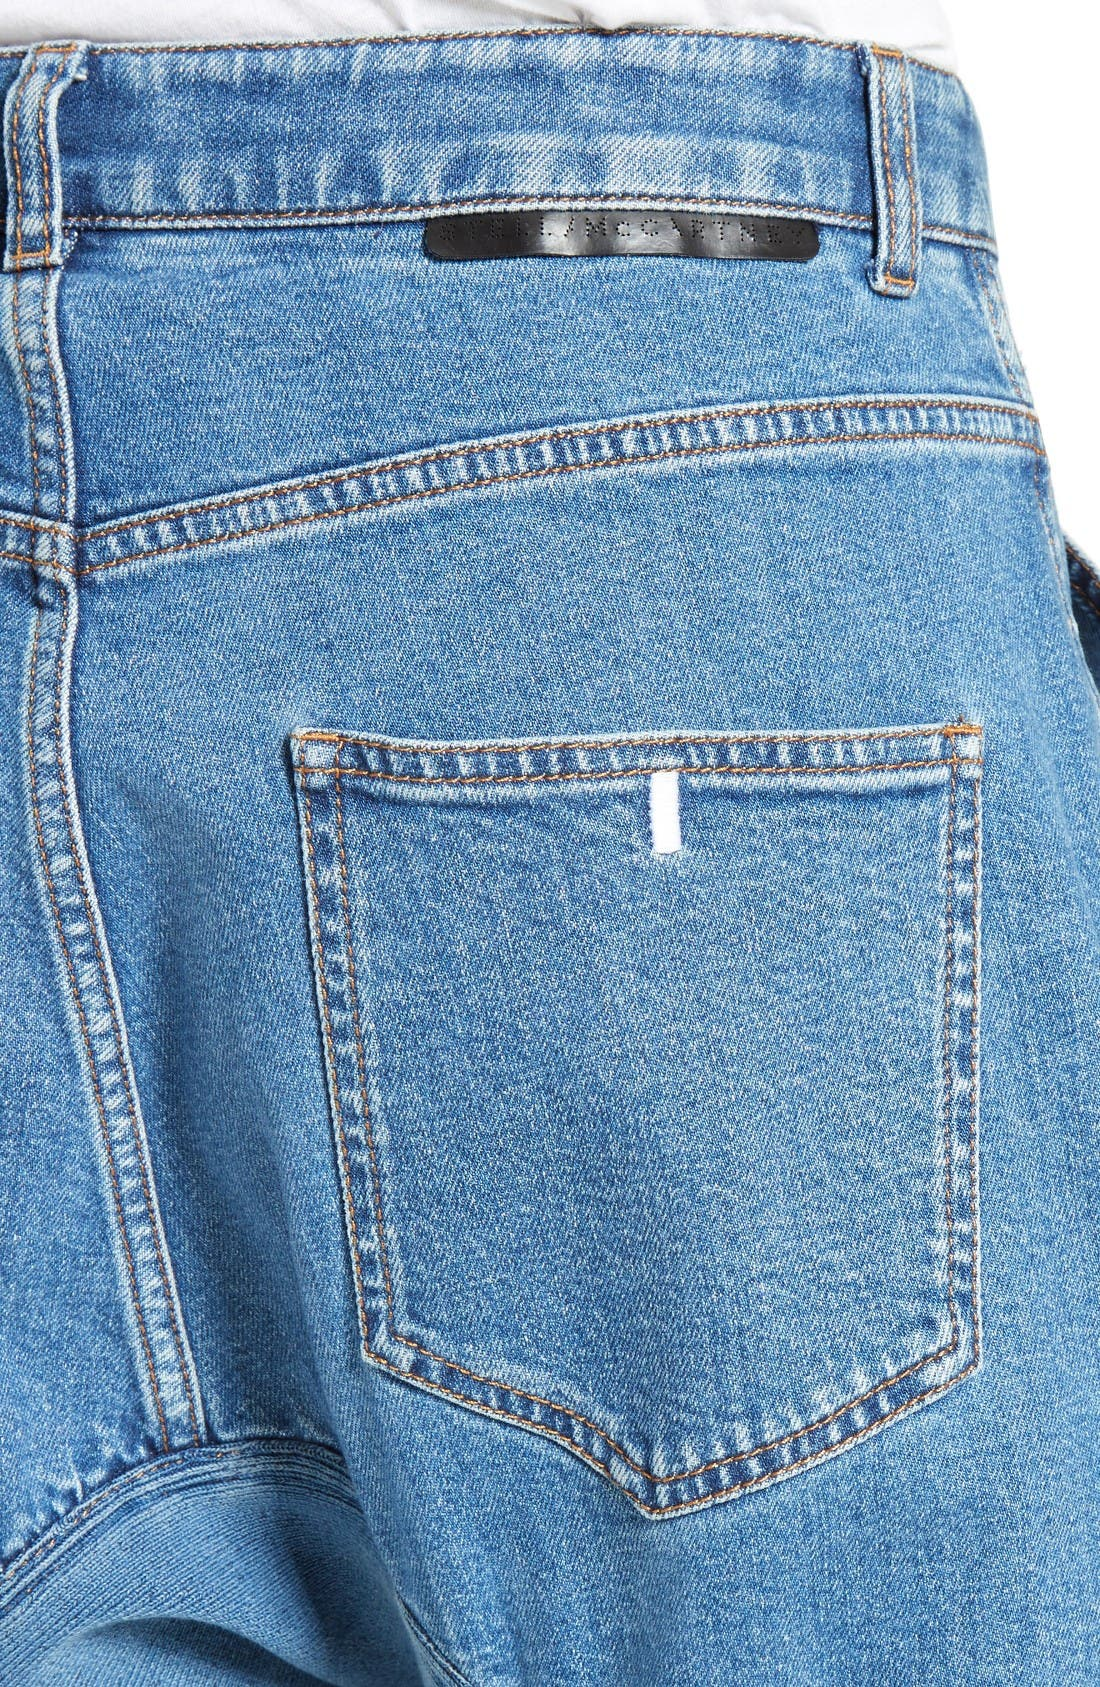 Xenia Ruched Crop Jeans,                             Alternate thumbnail 6, color,                             Blue